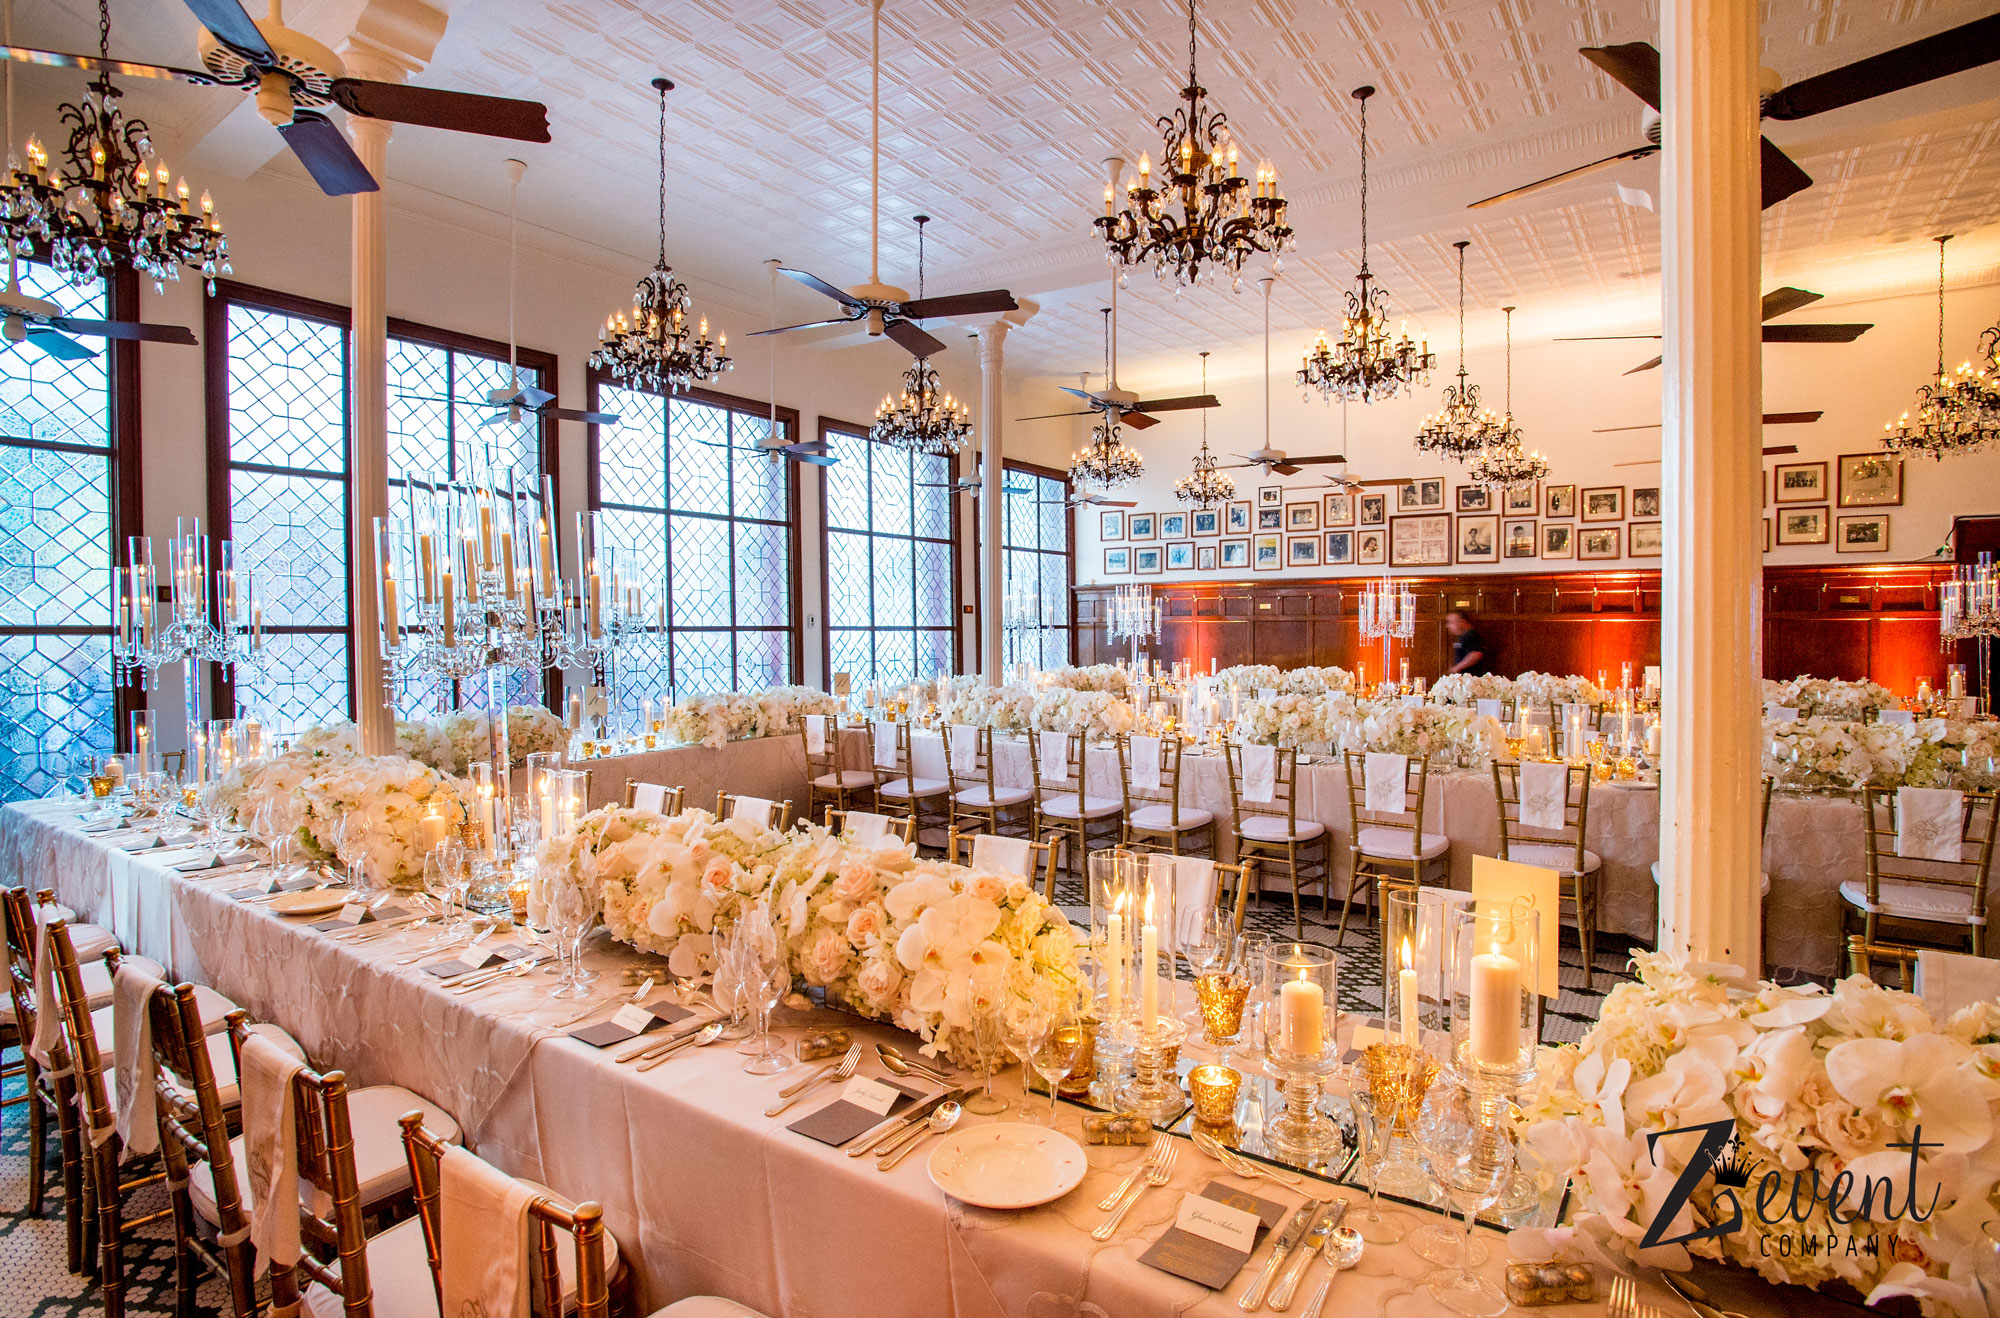 Rehearsal dinners arnauds restaurant rehearsal dinners gallery junglespirit Image collections